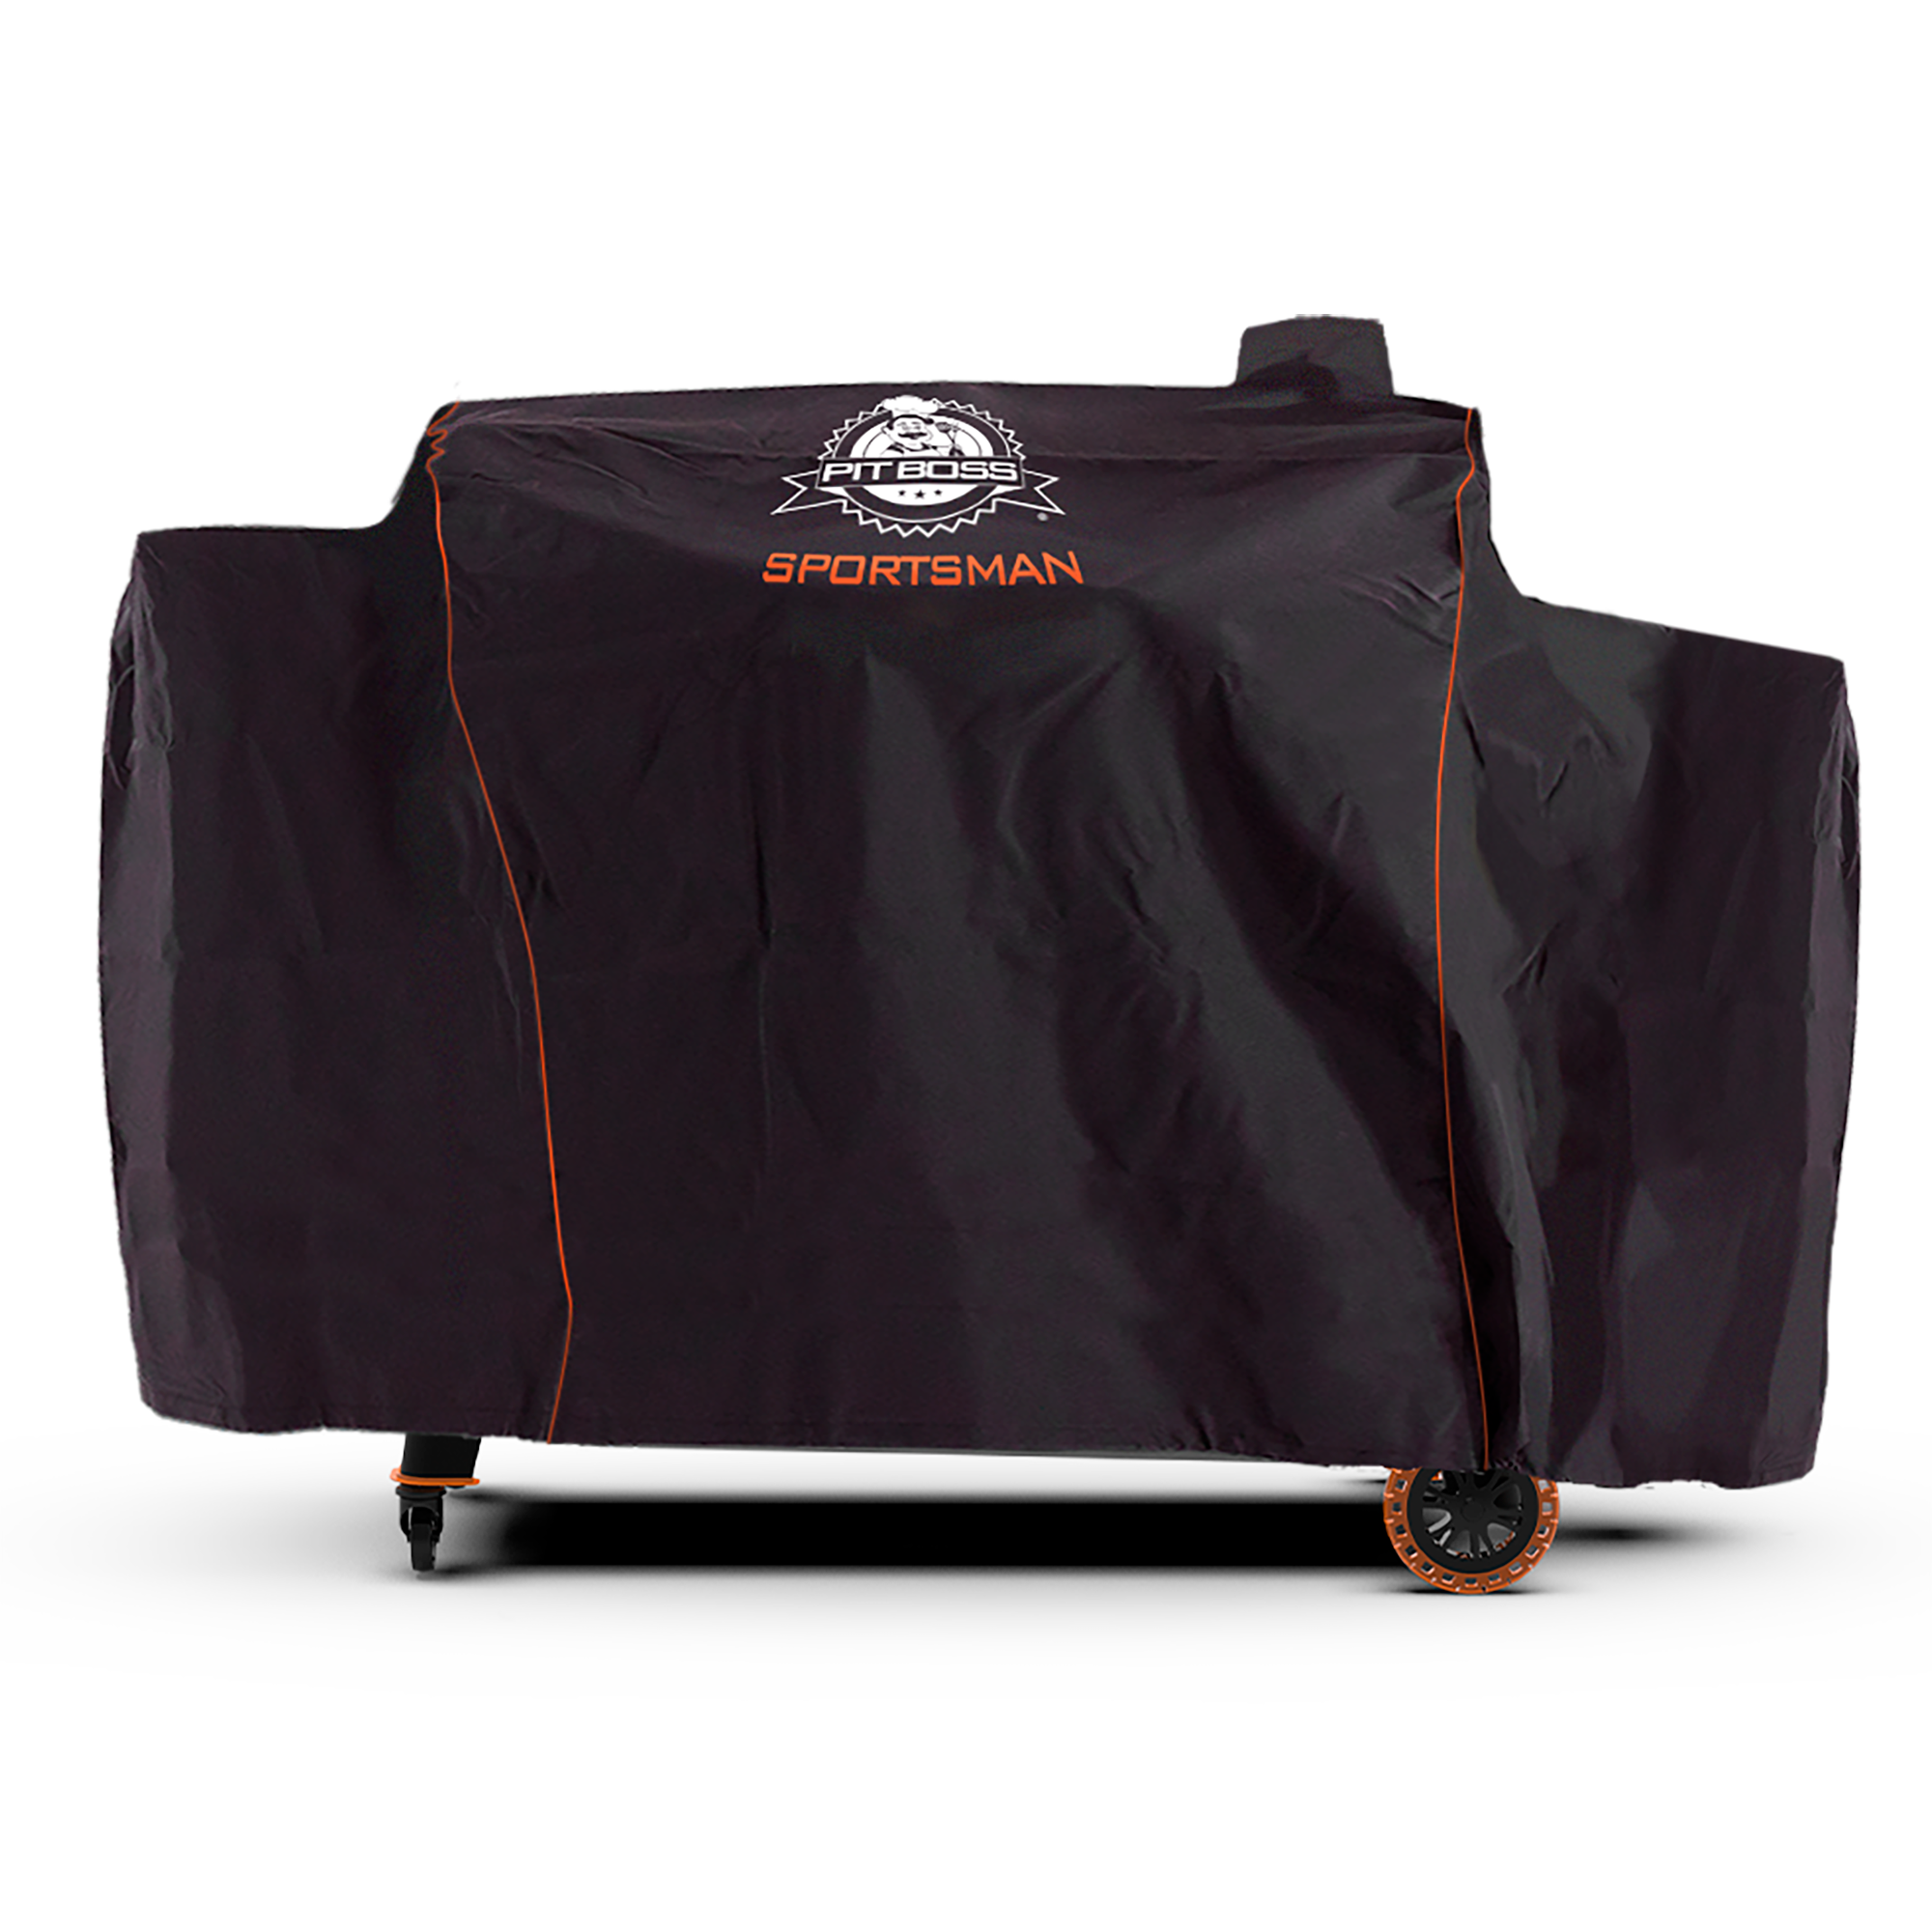 Pit Boss Sportsman 1230 Combo Grill Cover